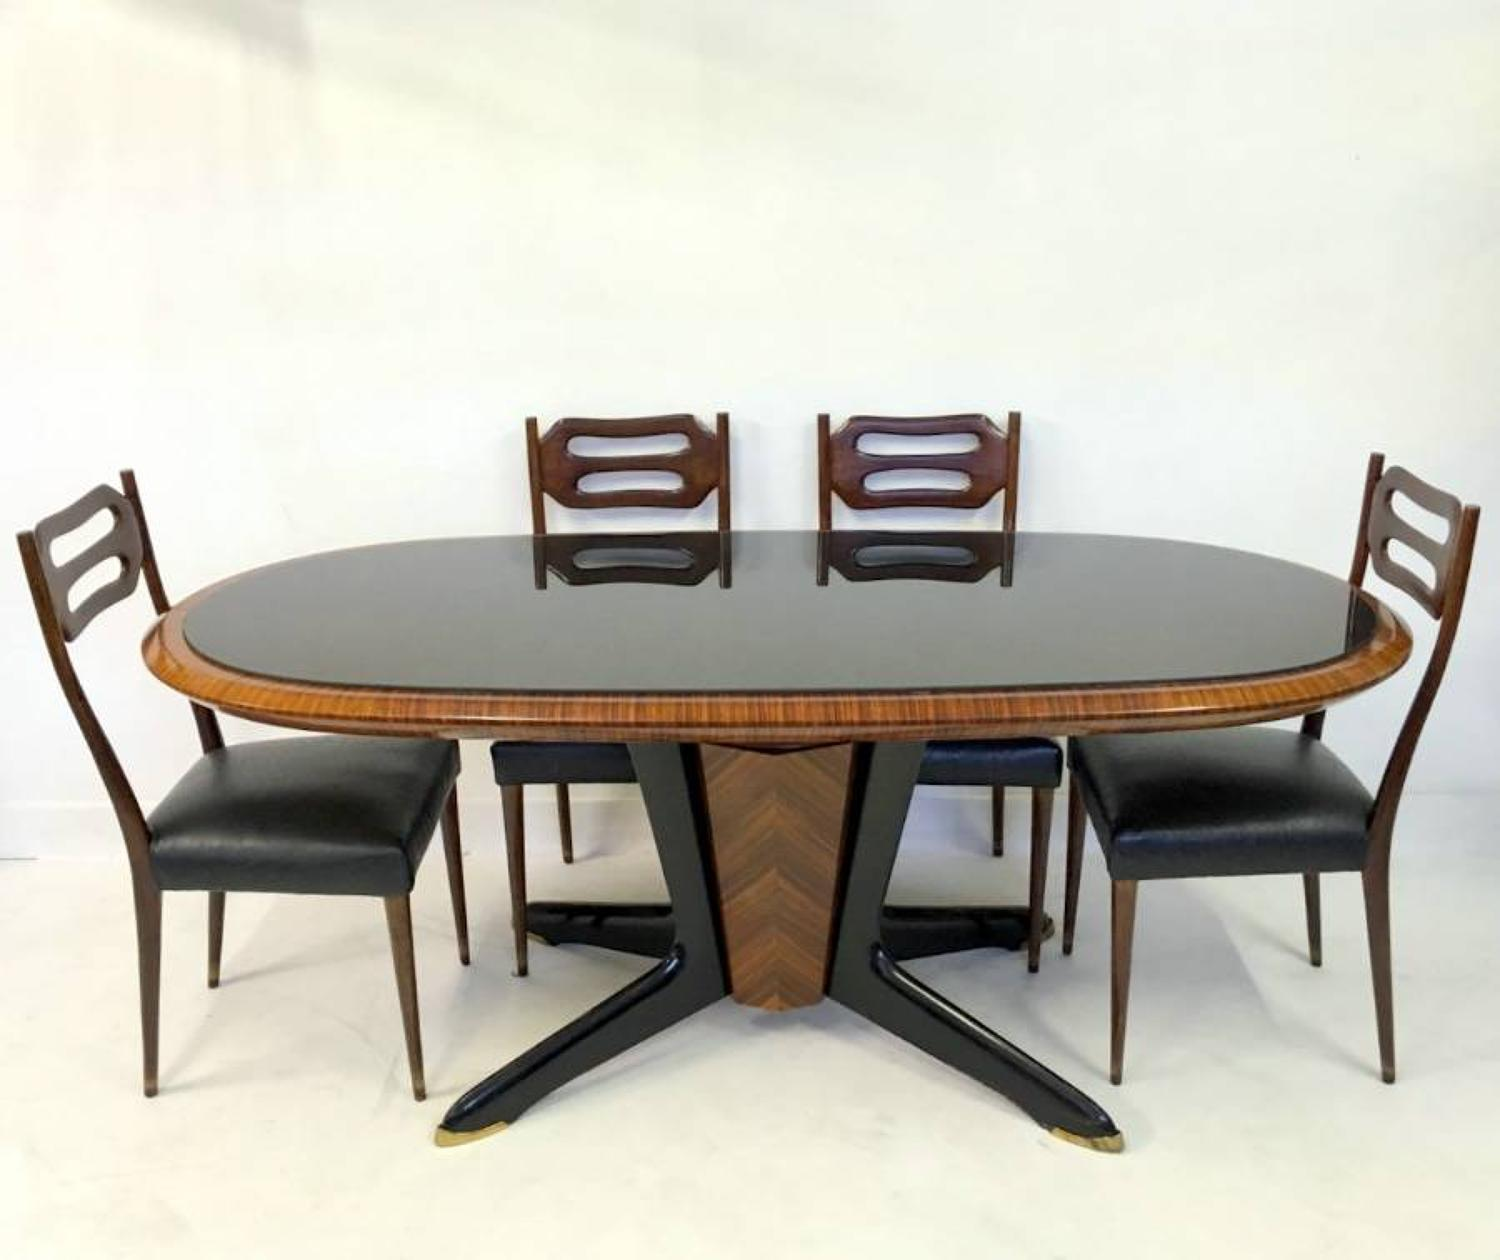 1950s Italian dining table and six chairs